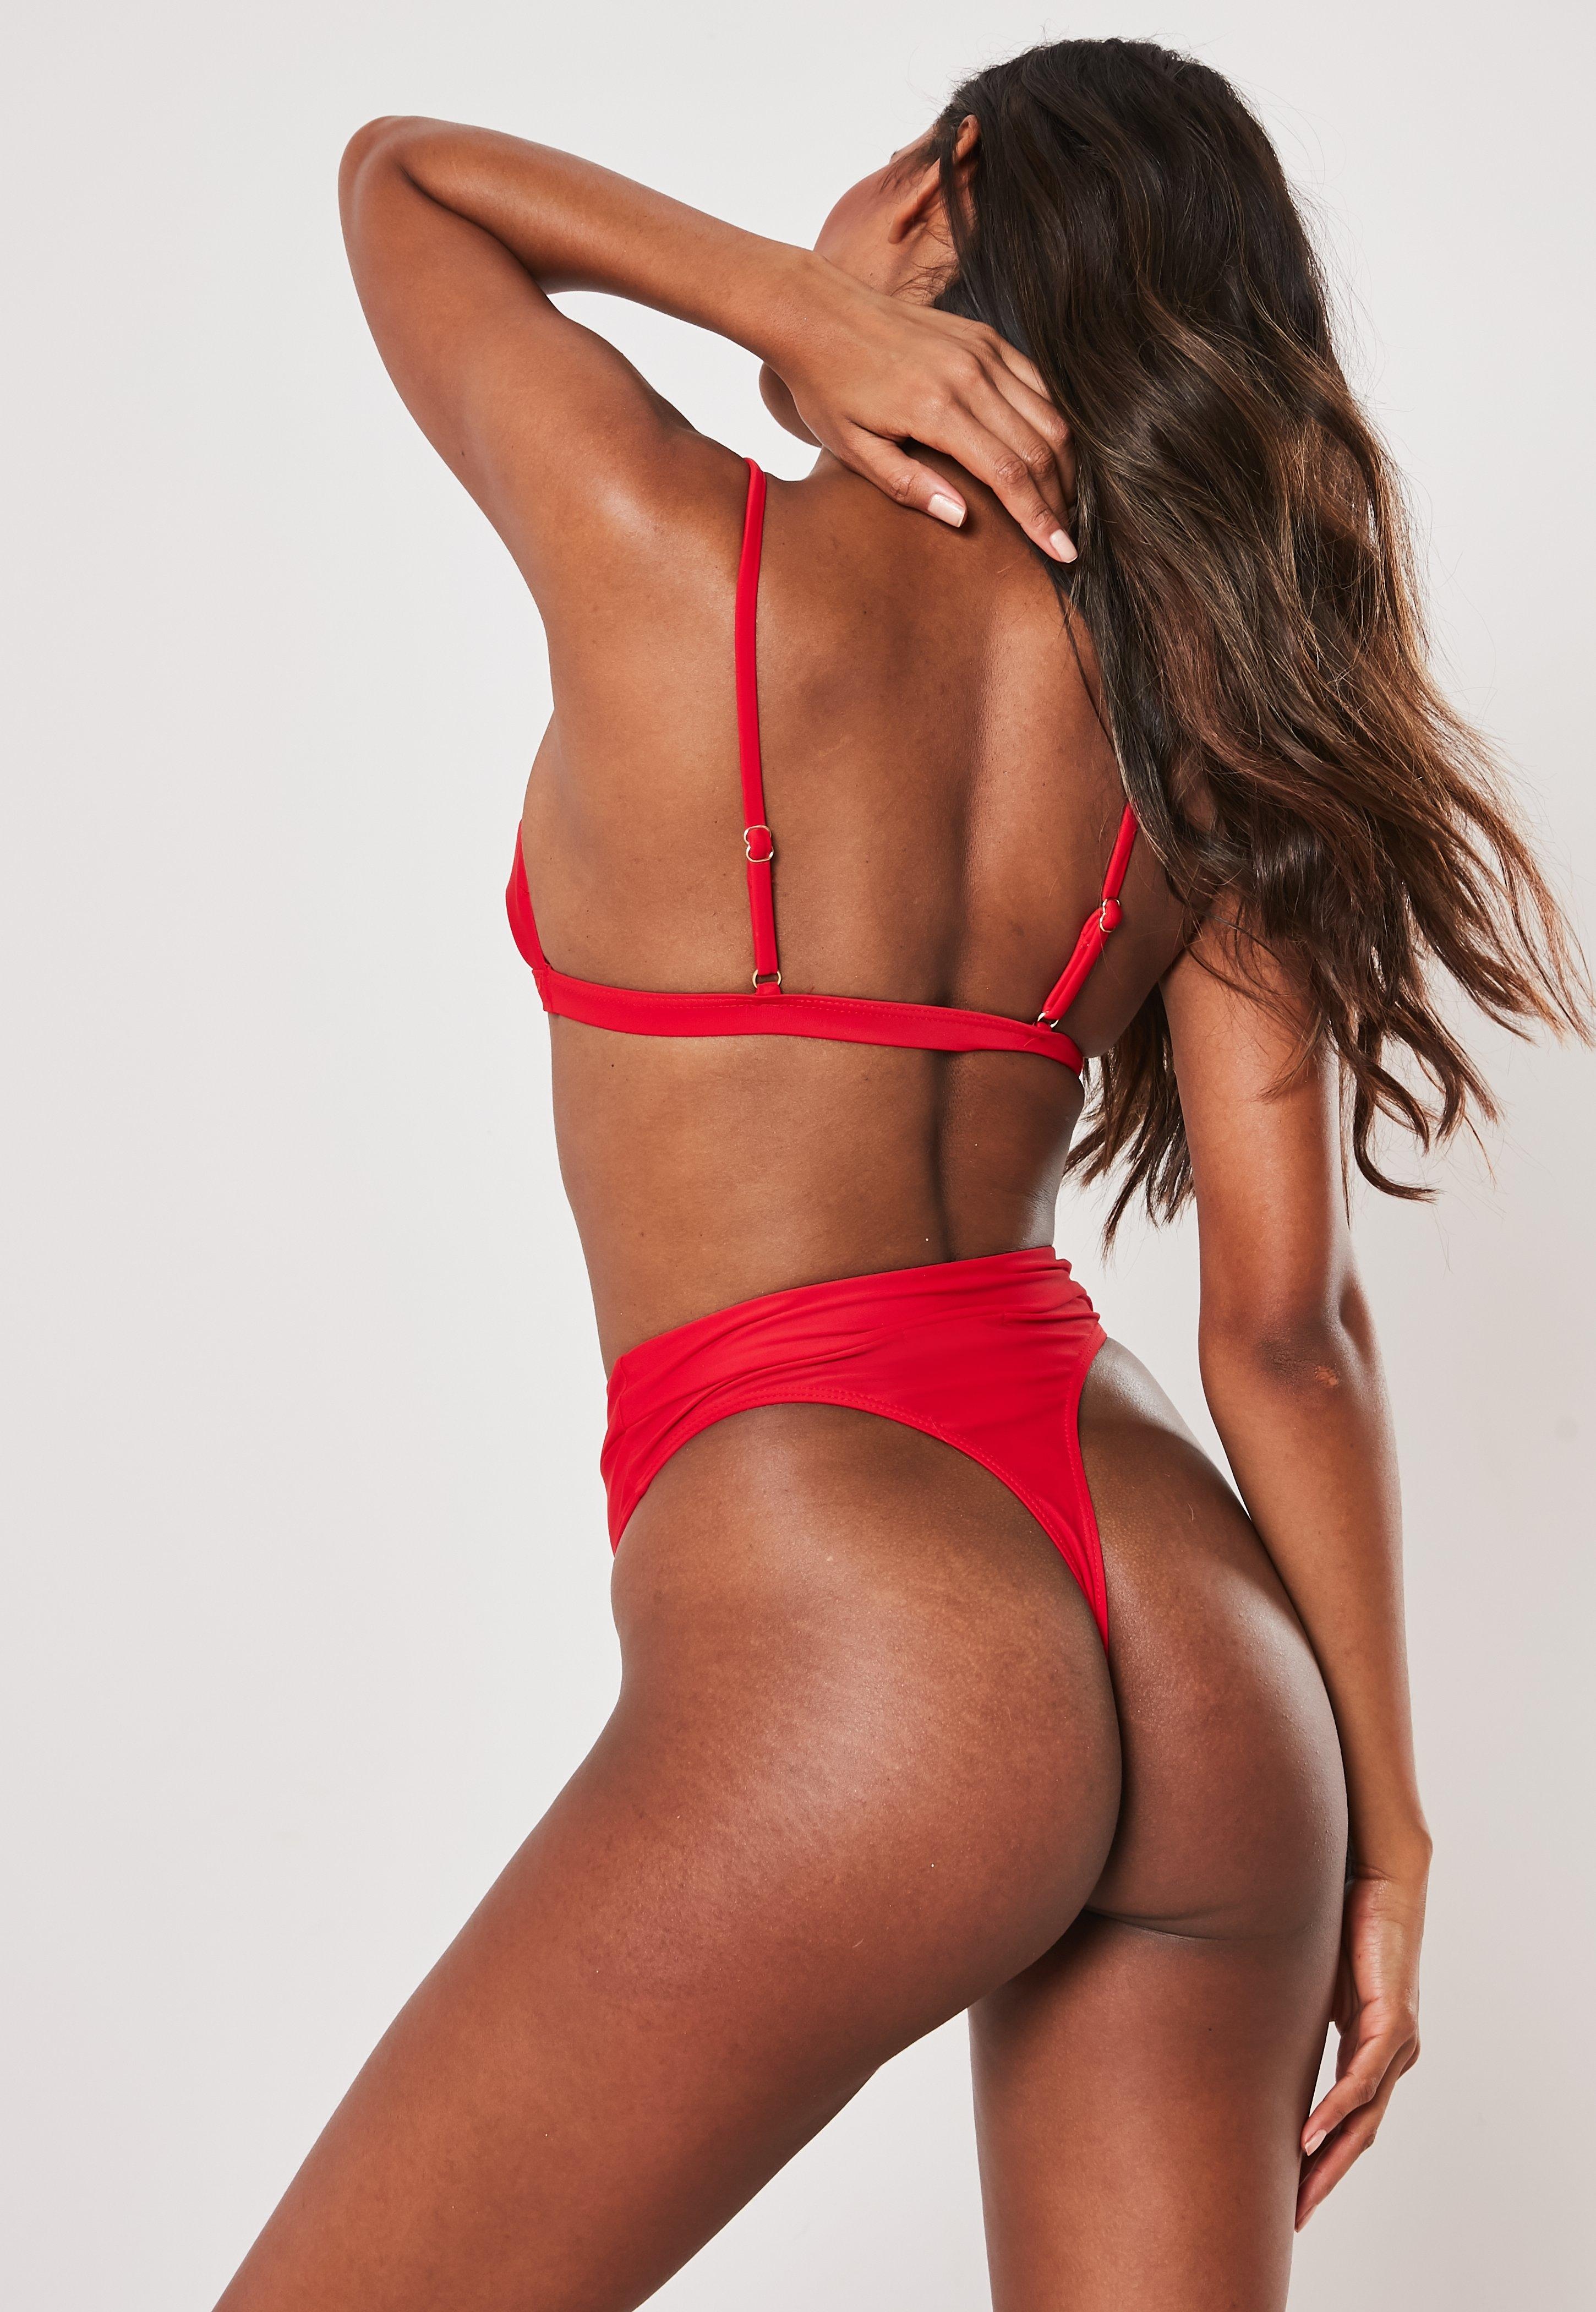 679a5cba91 Red Mix And Match High Waisted Thong Bikini Bottoms